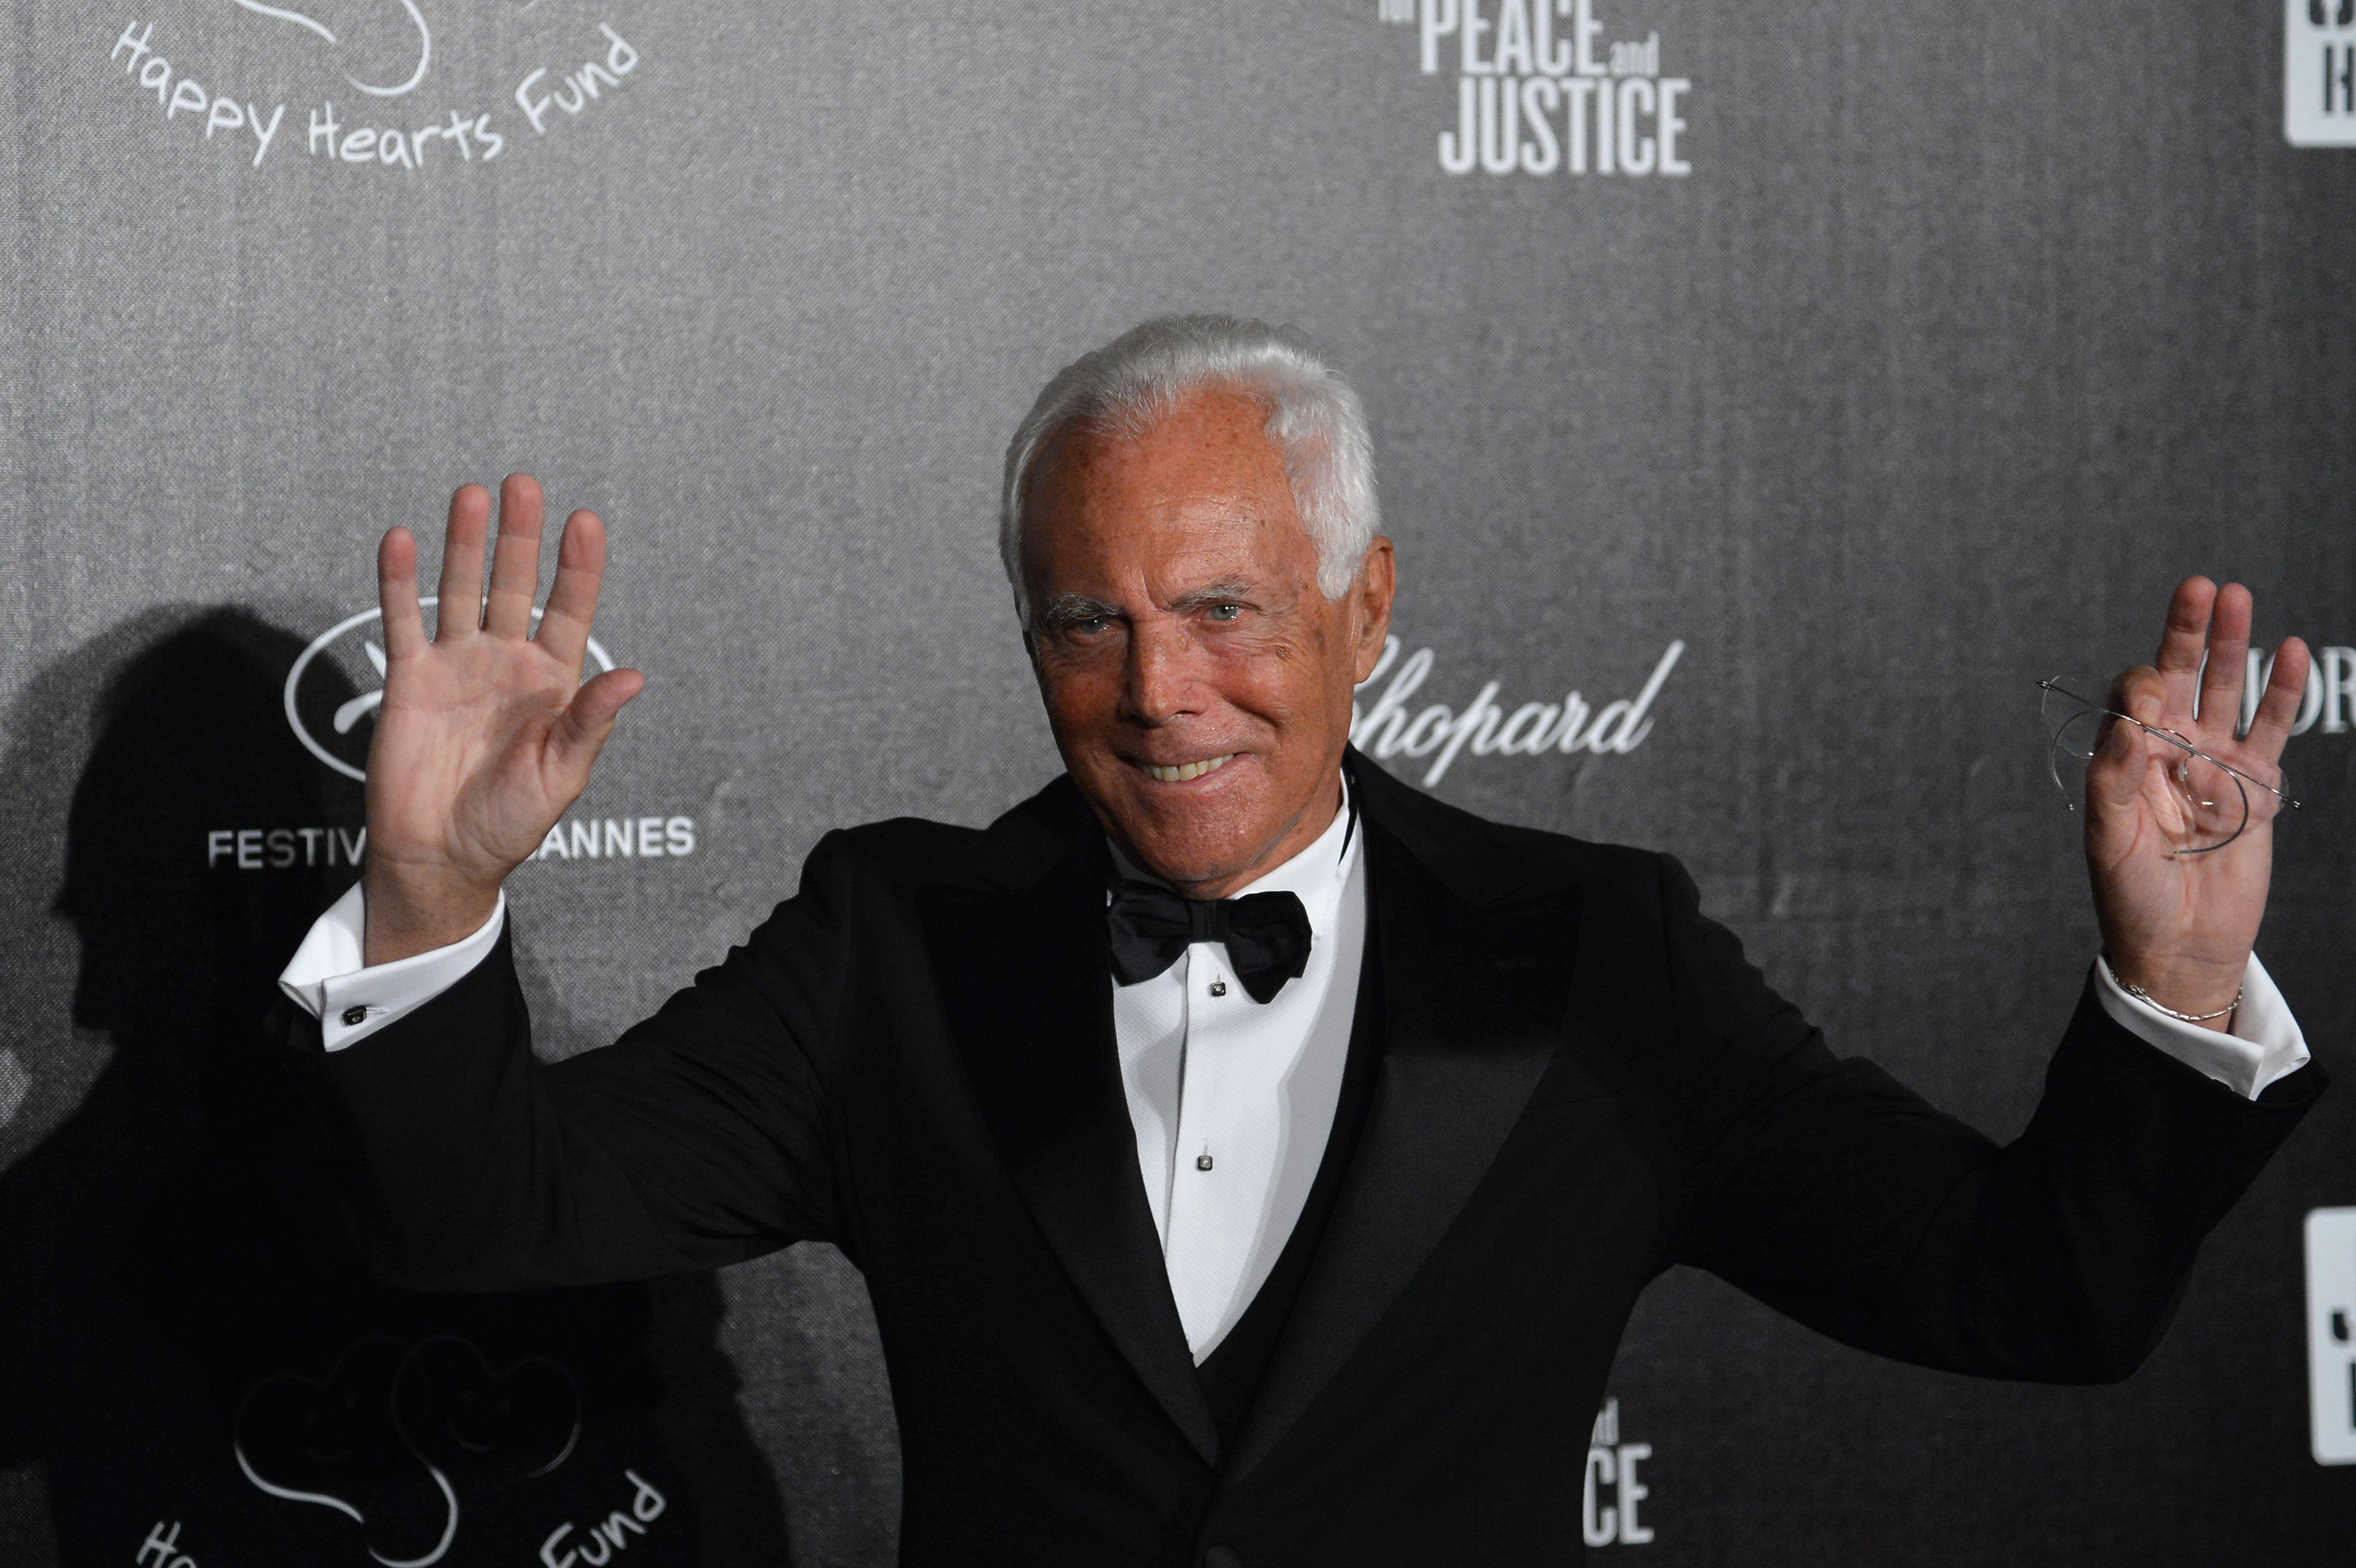 Italian designer Giorgio Armani arrives for an event to raise money for charities working in Haiti, at the 65th Cannes film festival on May 18, 2012 in Cannes.   AFP PHOTO / ALBERTO PIZZOLI        (Photo credit should read ALBERTO PIZZOLI/AFP/GettyImages)